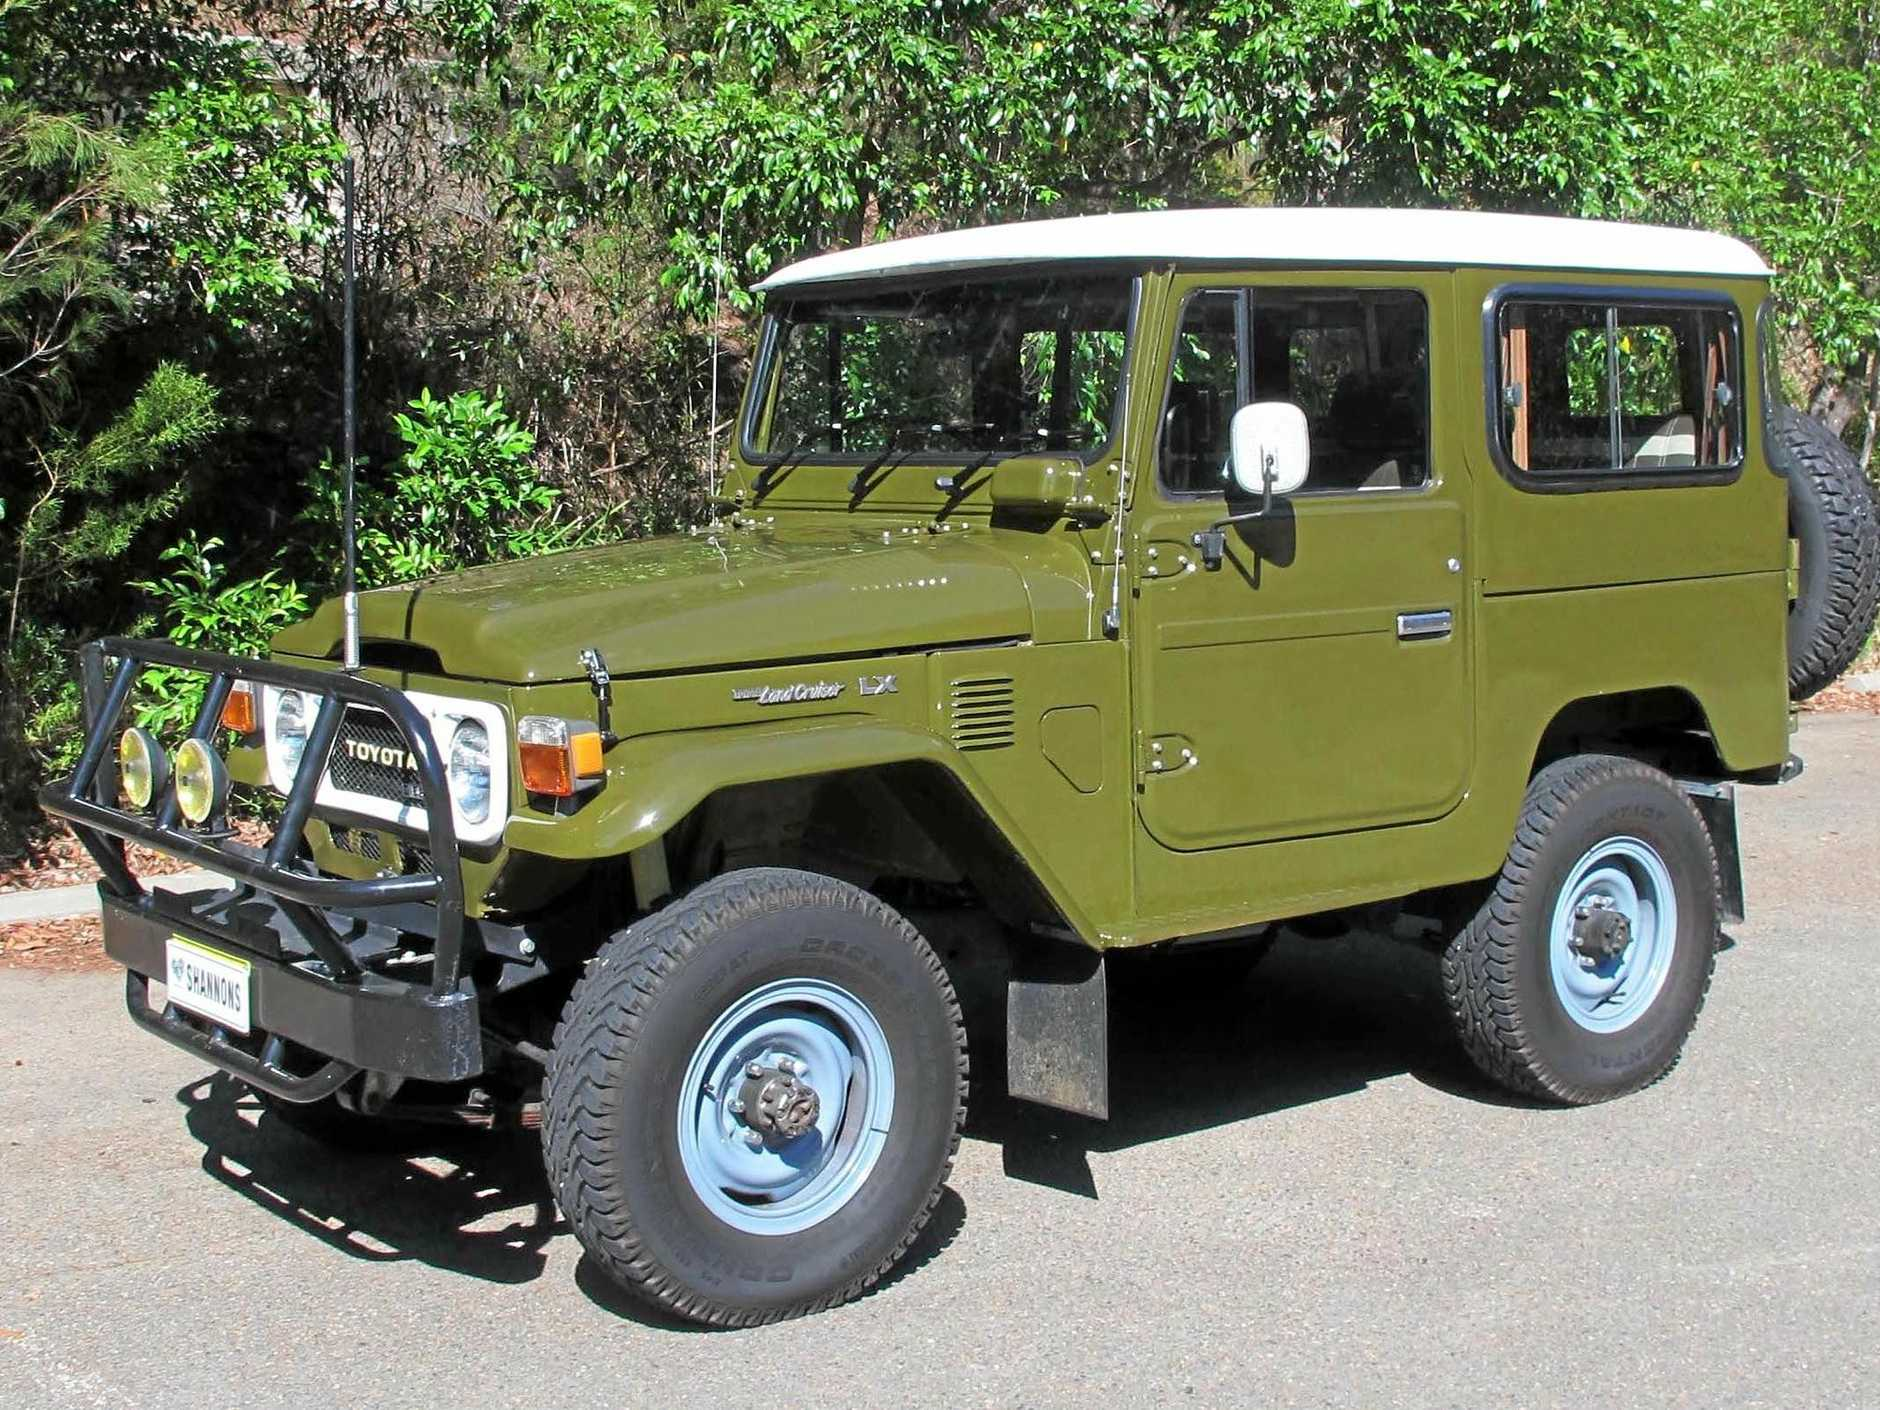 This restored 1983 Toyota BJ42 LX SWB LandCruiser diesel 4WD brought $45,000.